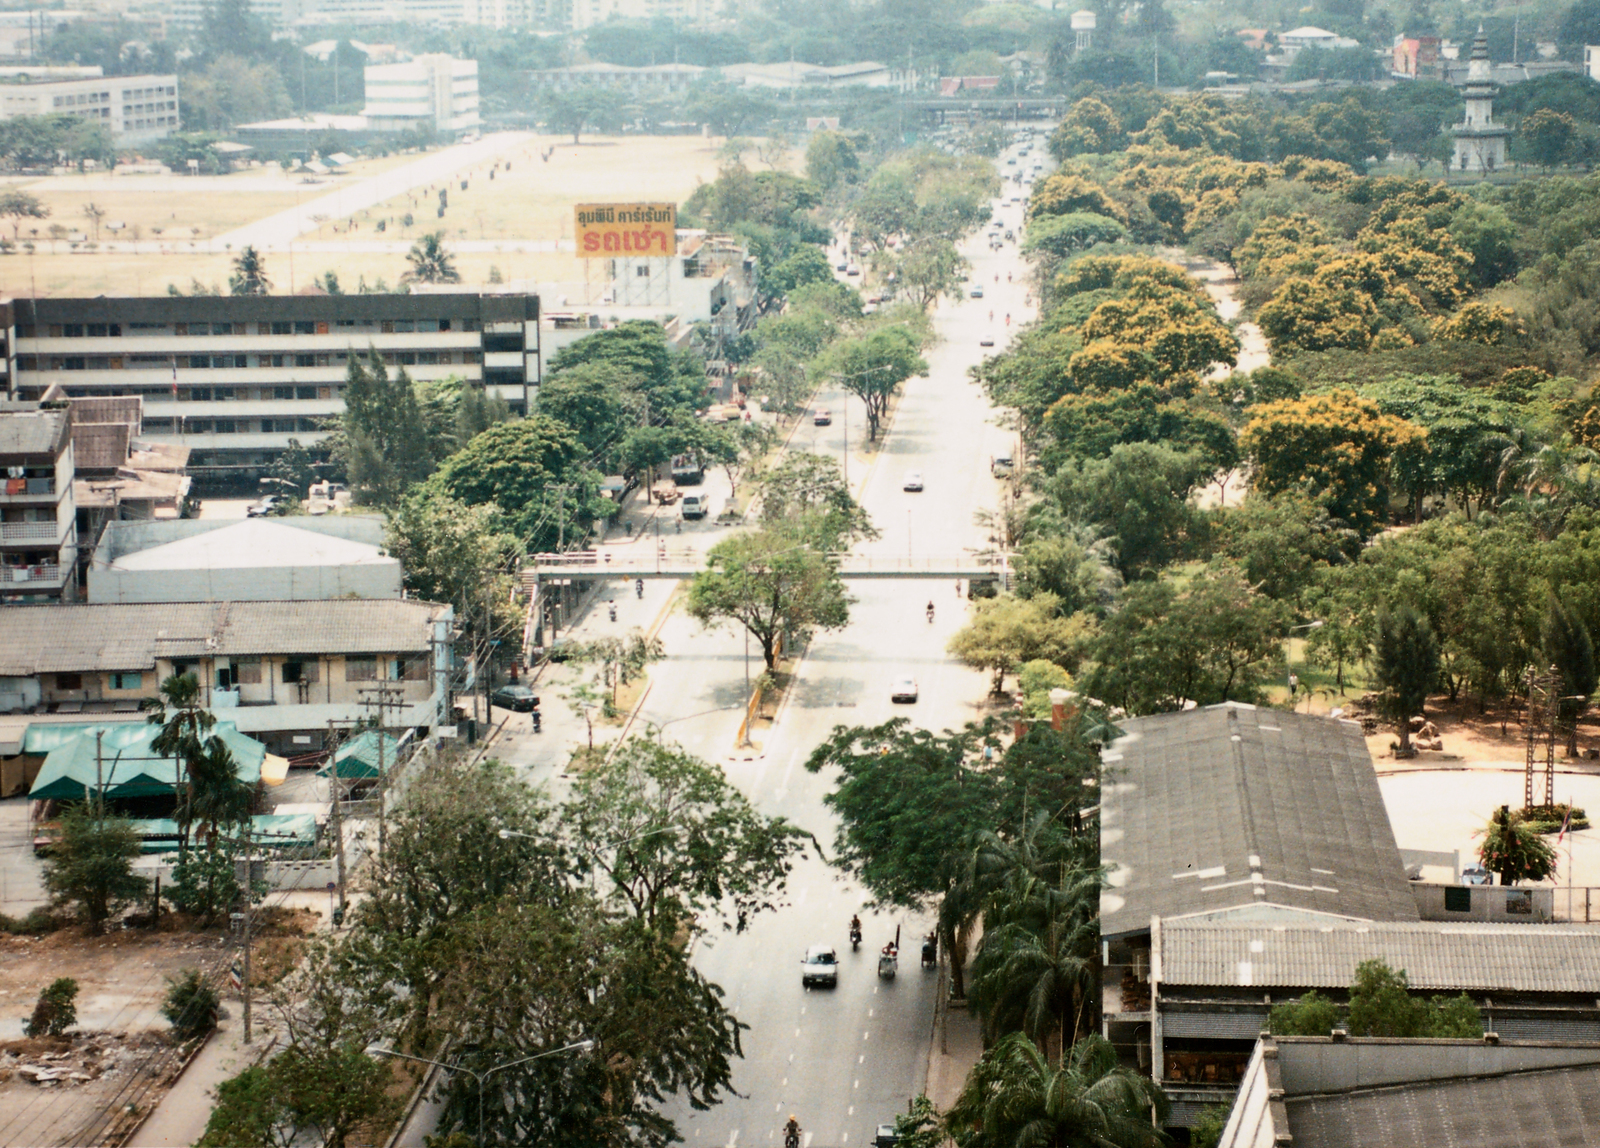 Bangkok - Compound Site - 1990